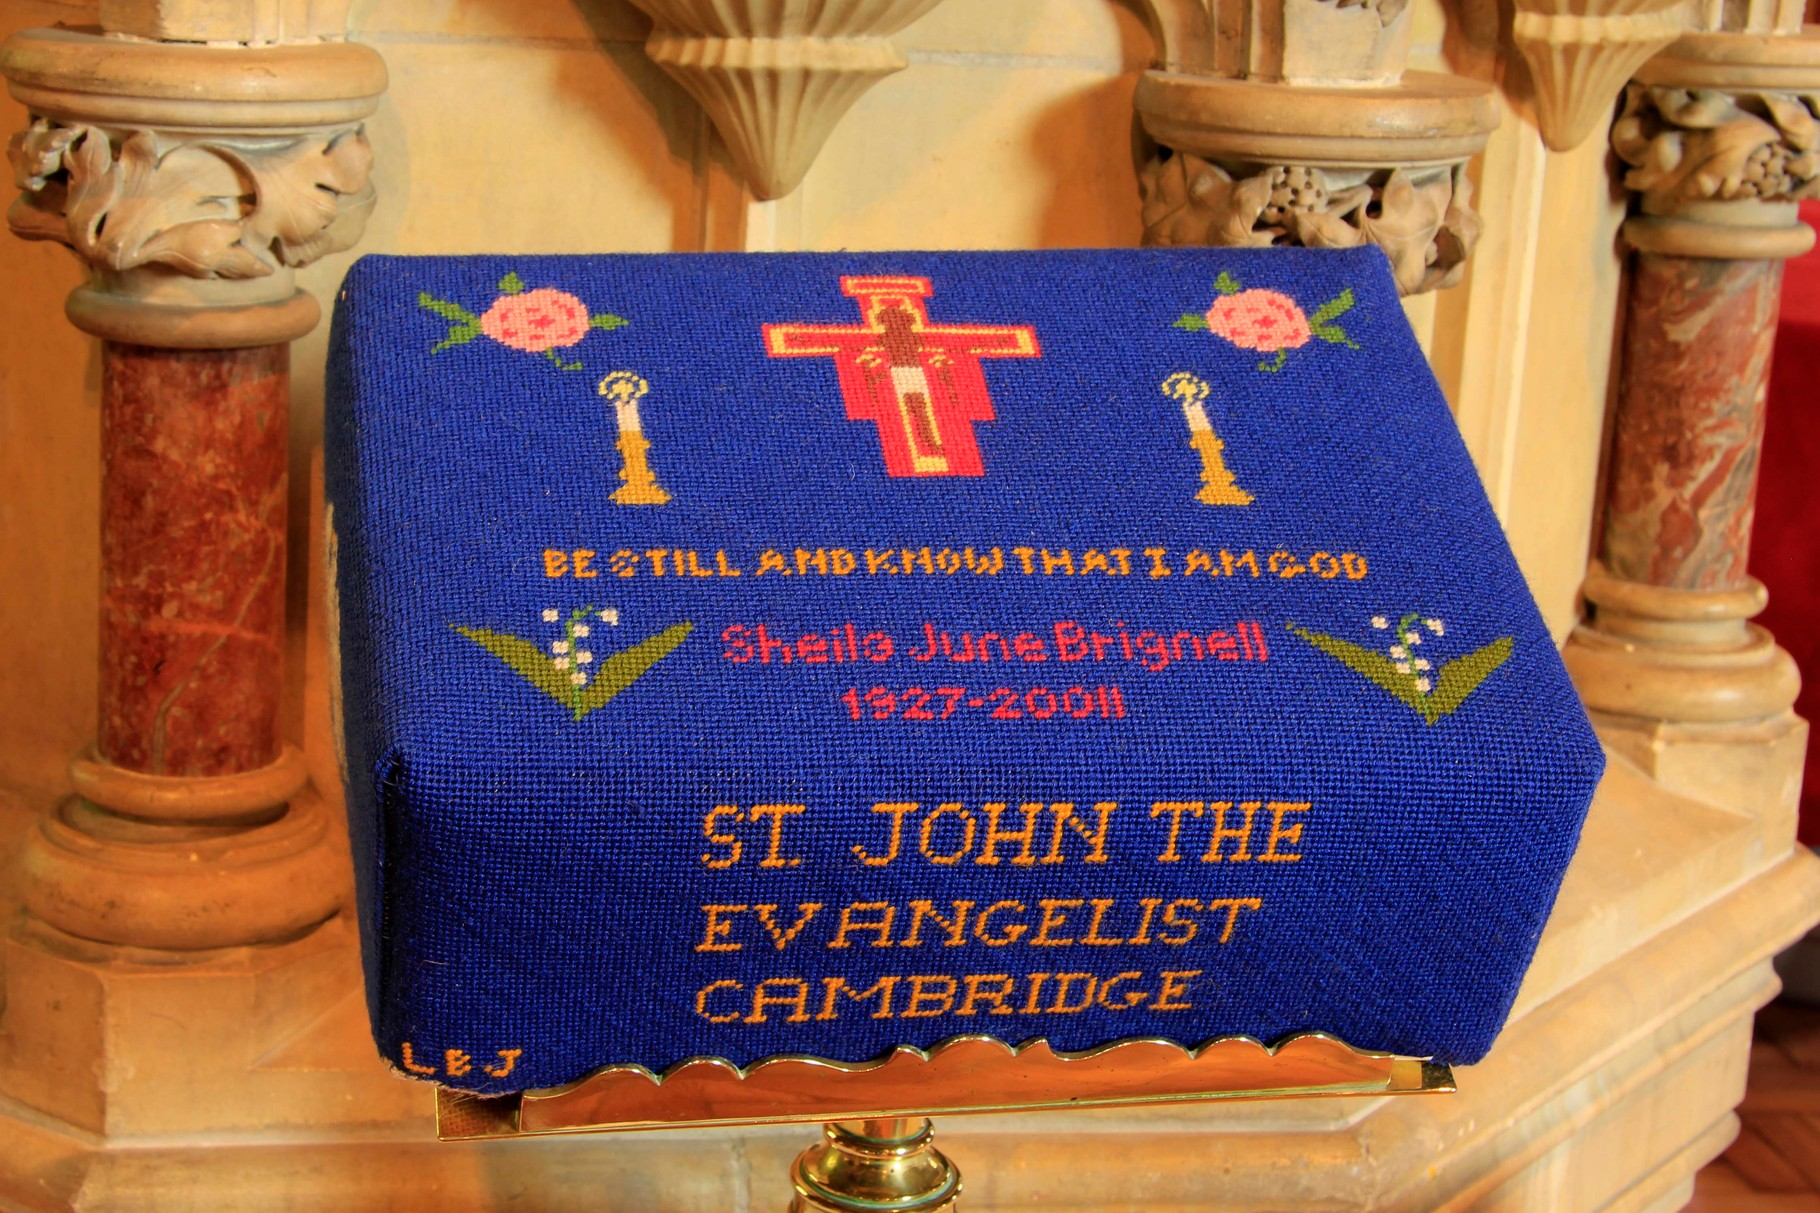 Kneeler in memory of June Brignell 1927 - 2011. Donated by St John's Companions and worked by Beryl Johnson